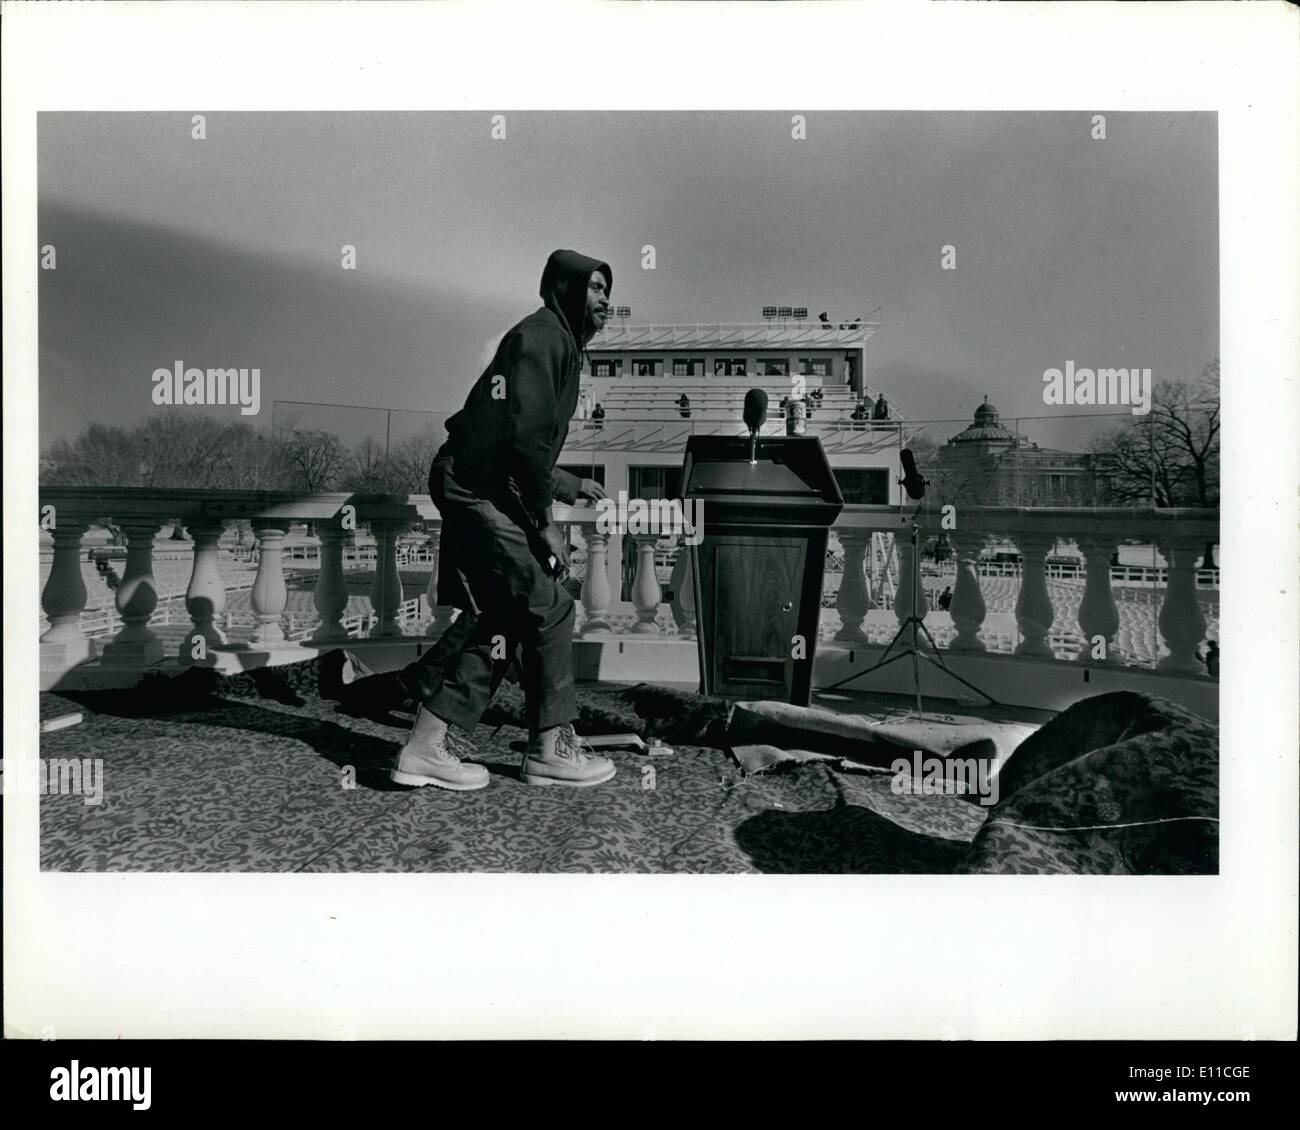 Jan. 01, 1977 - President Elect Jimmy Carter Inauguration Presidential guard stand and workers. ne Pictur - Stock Image